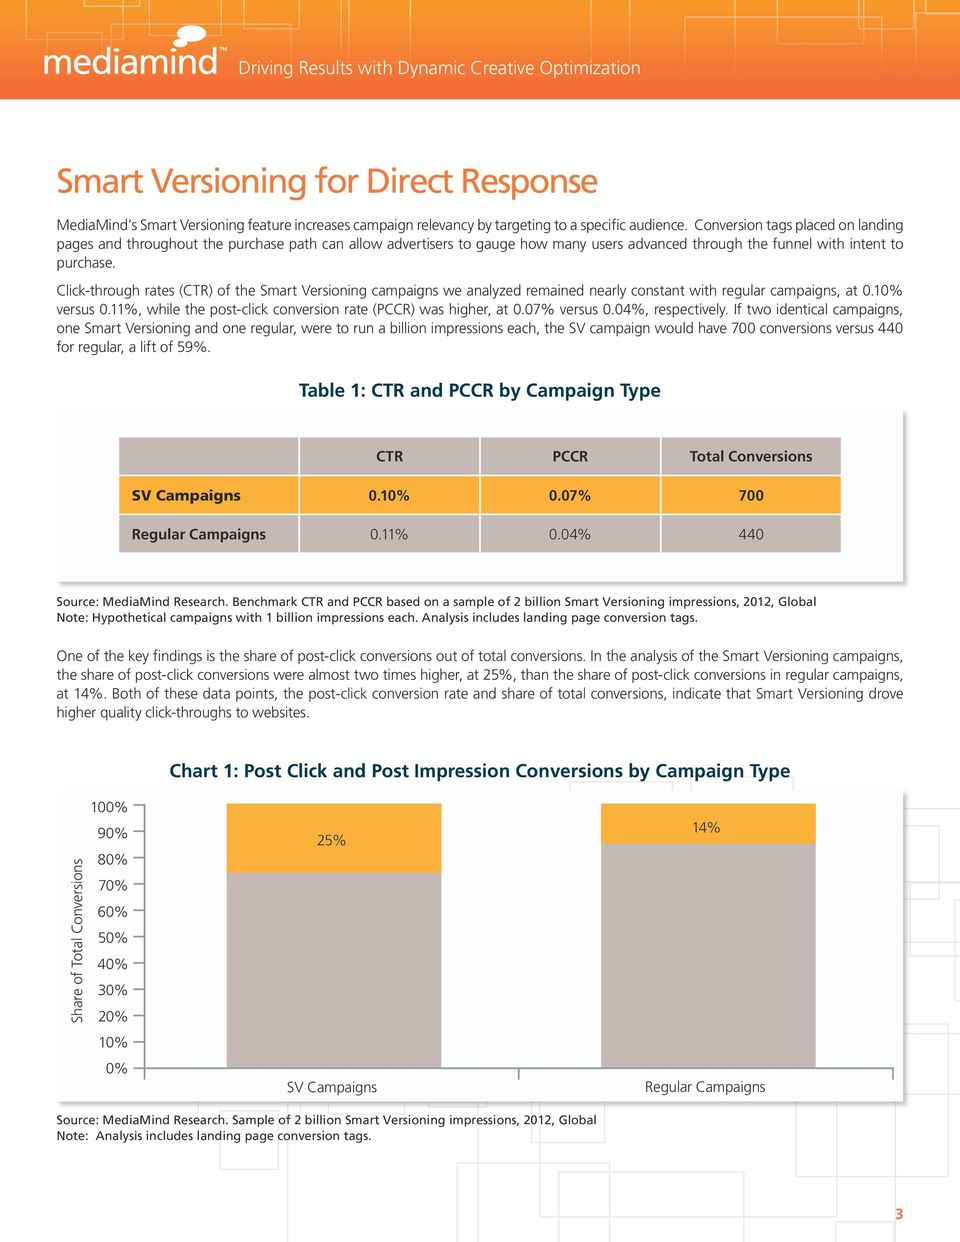 Click-through rates (CTR) of the Smart Versioning campaigns we analyzed remained nearly constant with regular campaigns, at 0.10% versus 0.